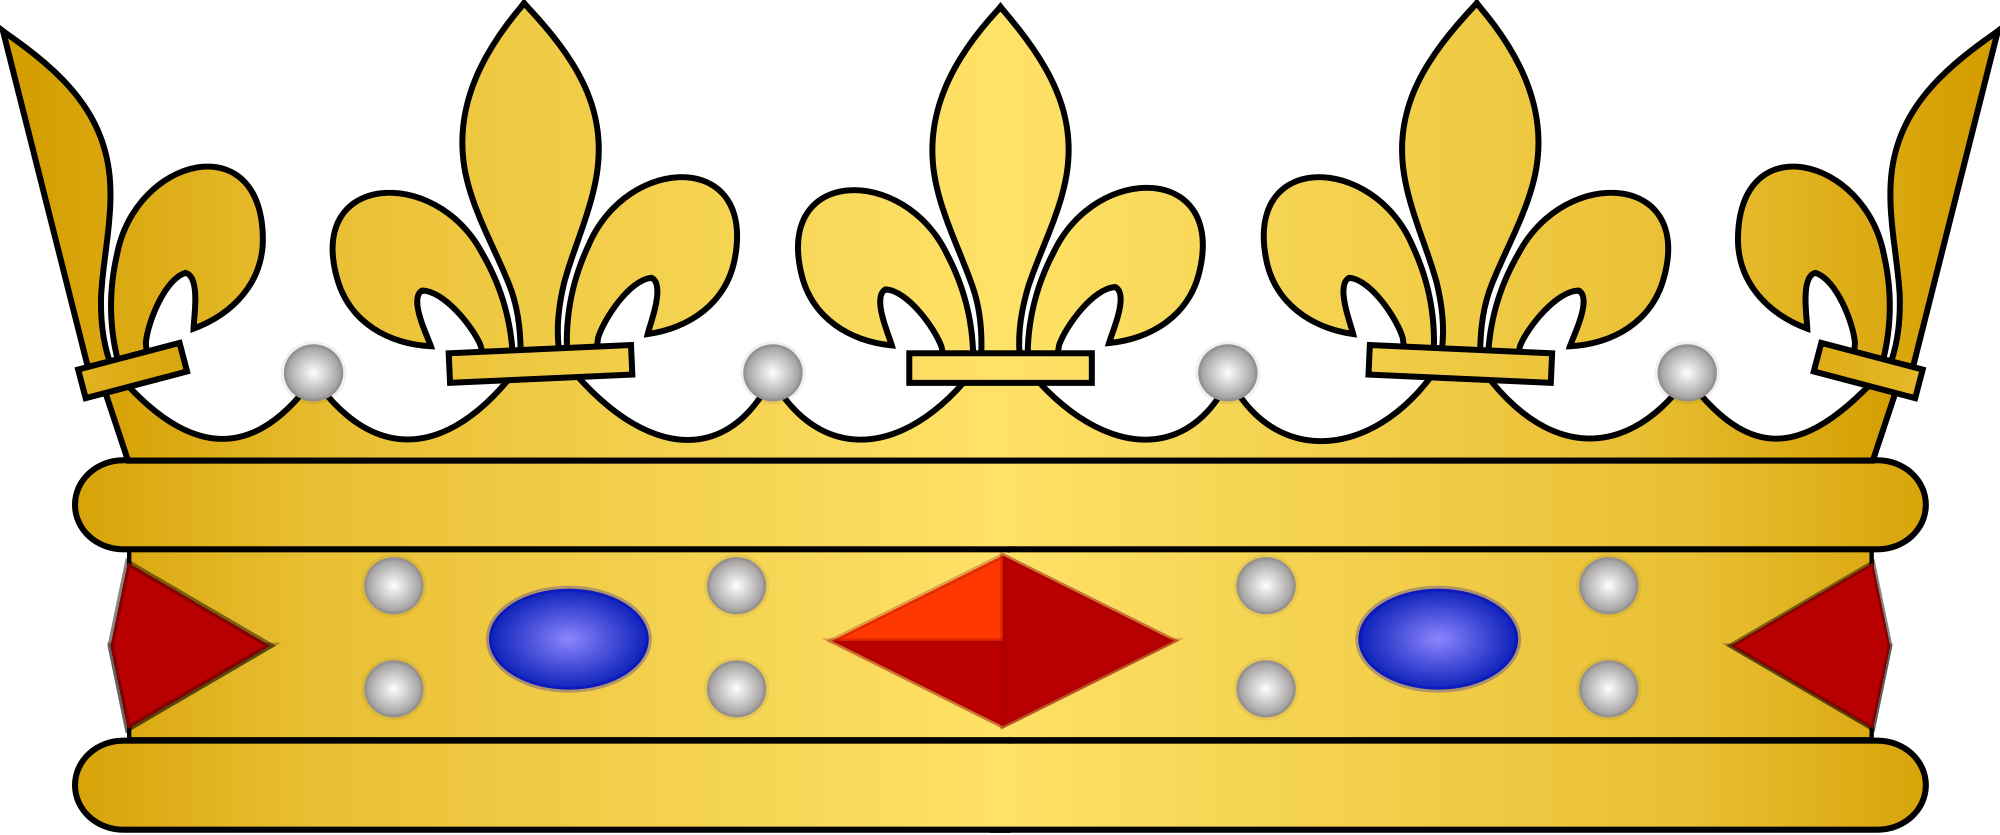 French crown clipart banner black and white stock File:French heraldic crowns - Prince de sang royal.svg - Wikimedia ... banner black and white stock